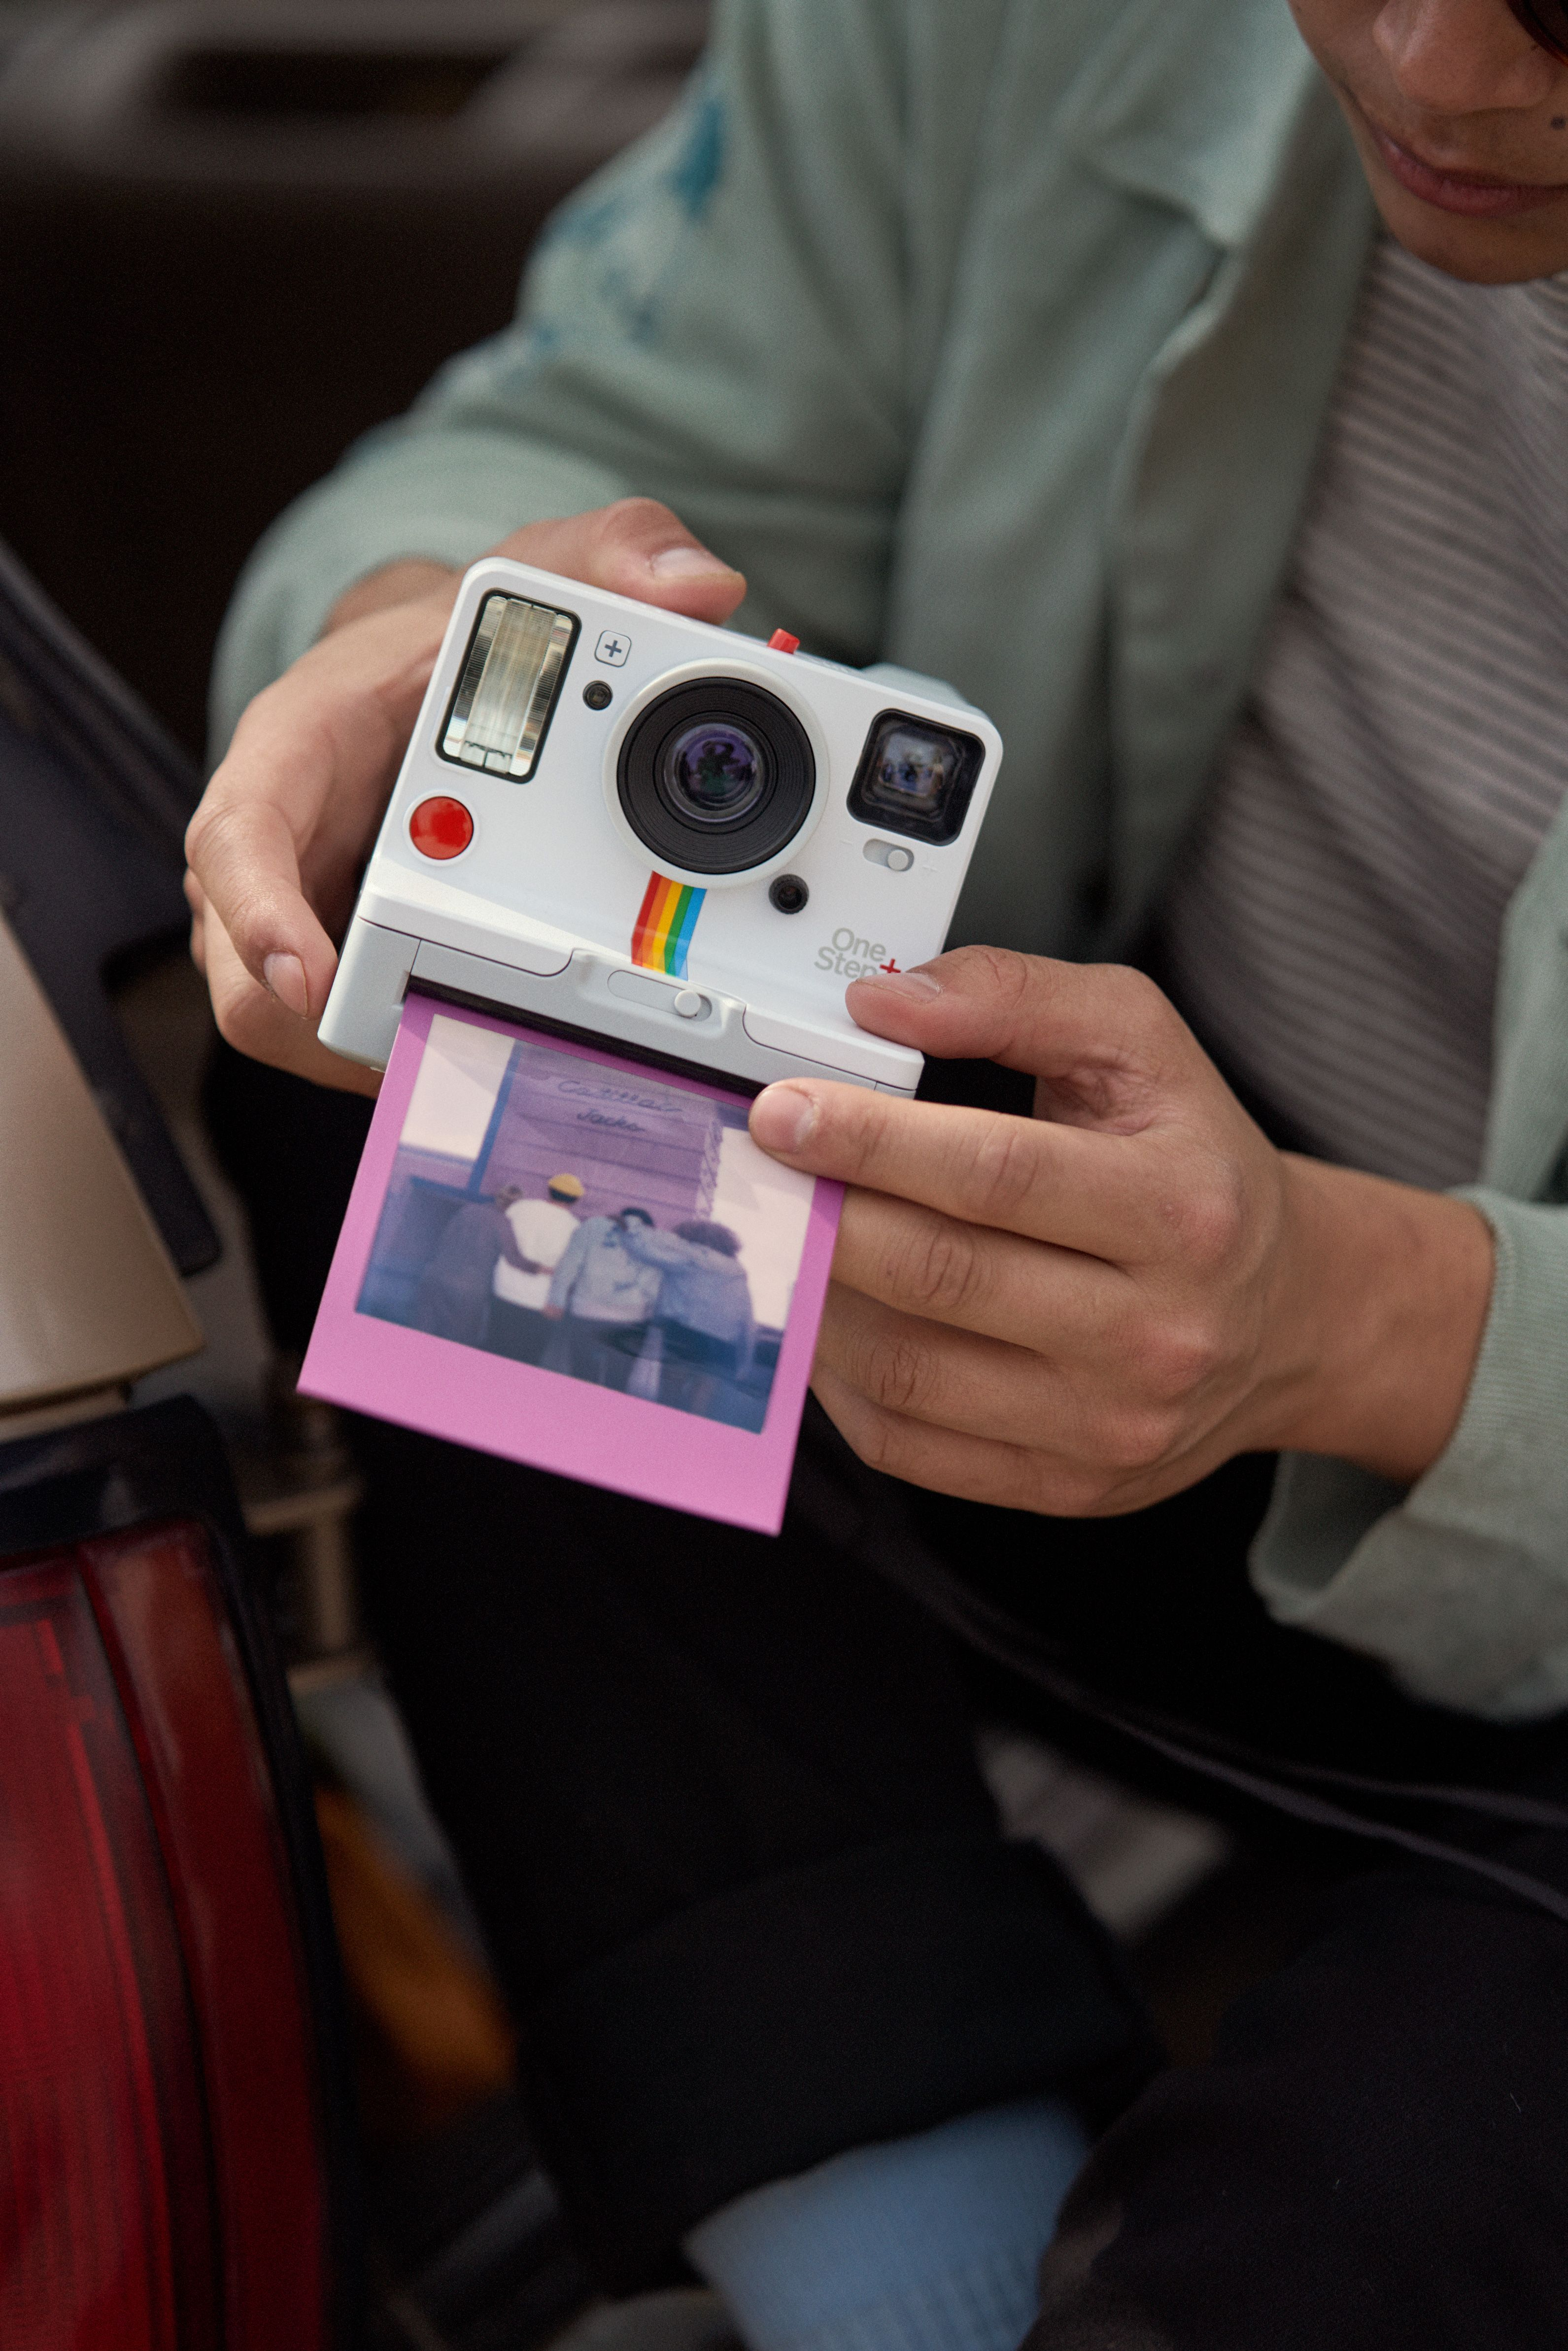 Pin By Jhully On Cryptid Project In 2020 Polaroid Camera Instant Camera Dslr Photography